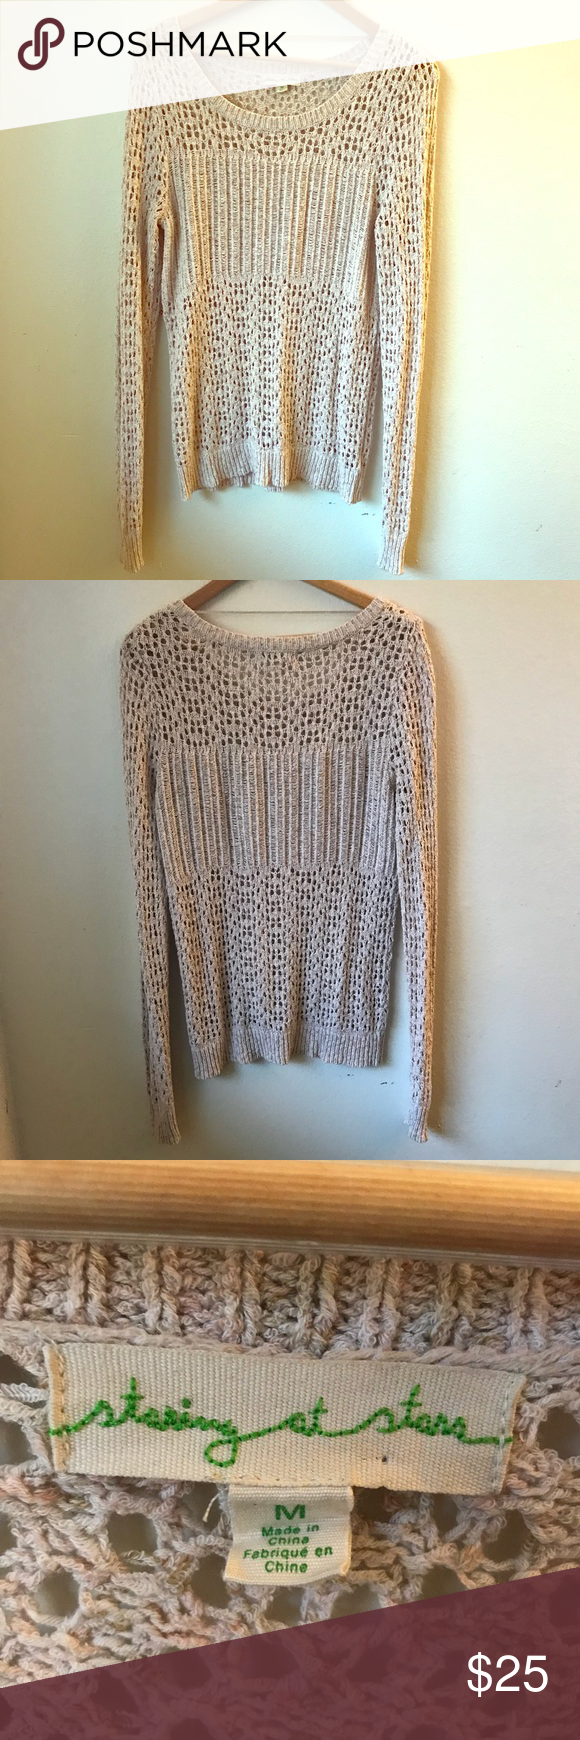 Slightly oversized sweater M (Staring at Stars) UO This is a fun beige slightly oversized sweater with texture and  compliments a good pair of jeans or shorts. Perfect for spring or for layering. Wonderful piece! 😍 Staring at Stars Sweaters Crew & Scoop Necks